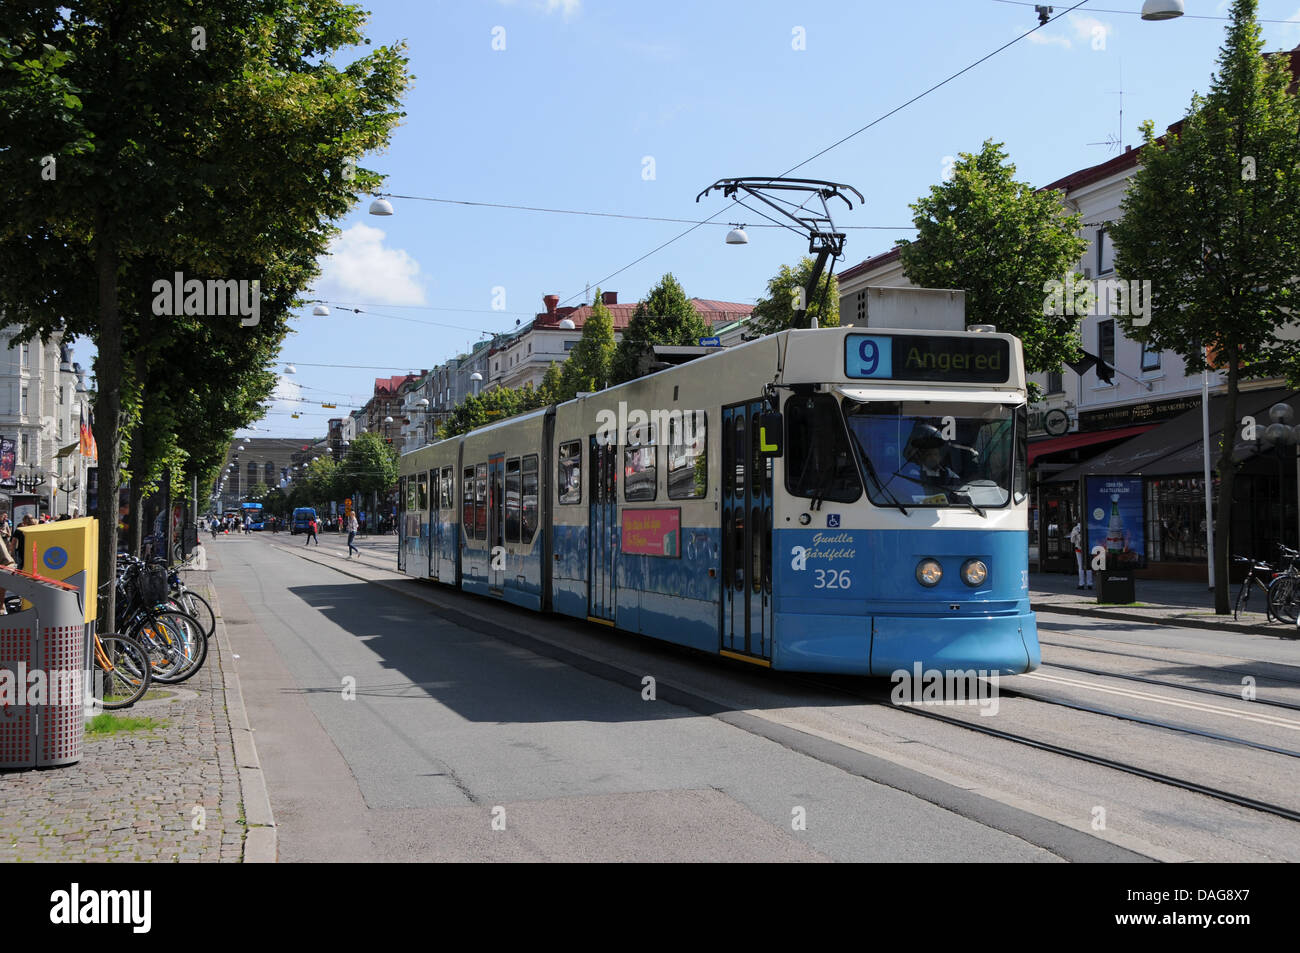 Street car or trolley coming down the Avenyen in Gothenburg on West Coast of Sweden - Stock Image